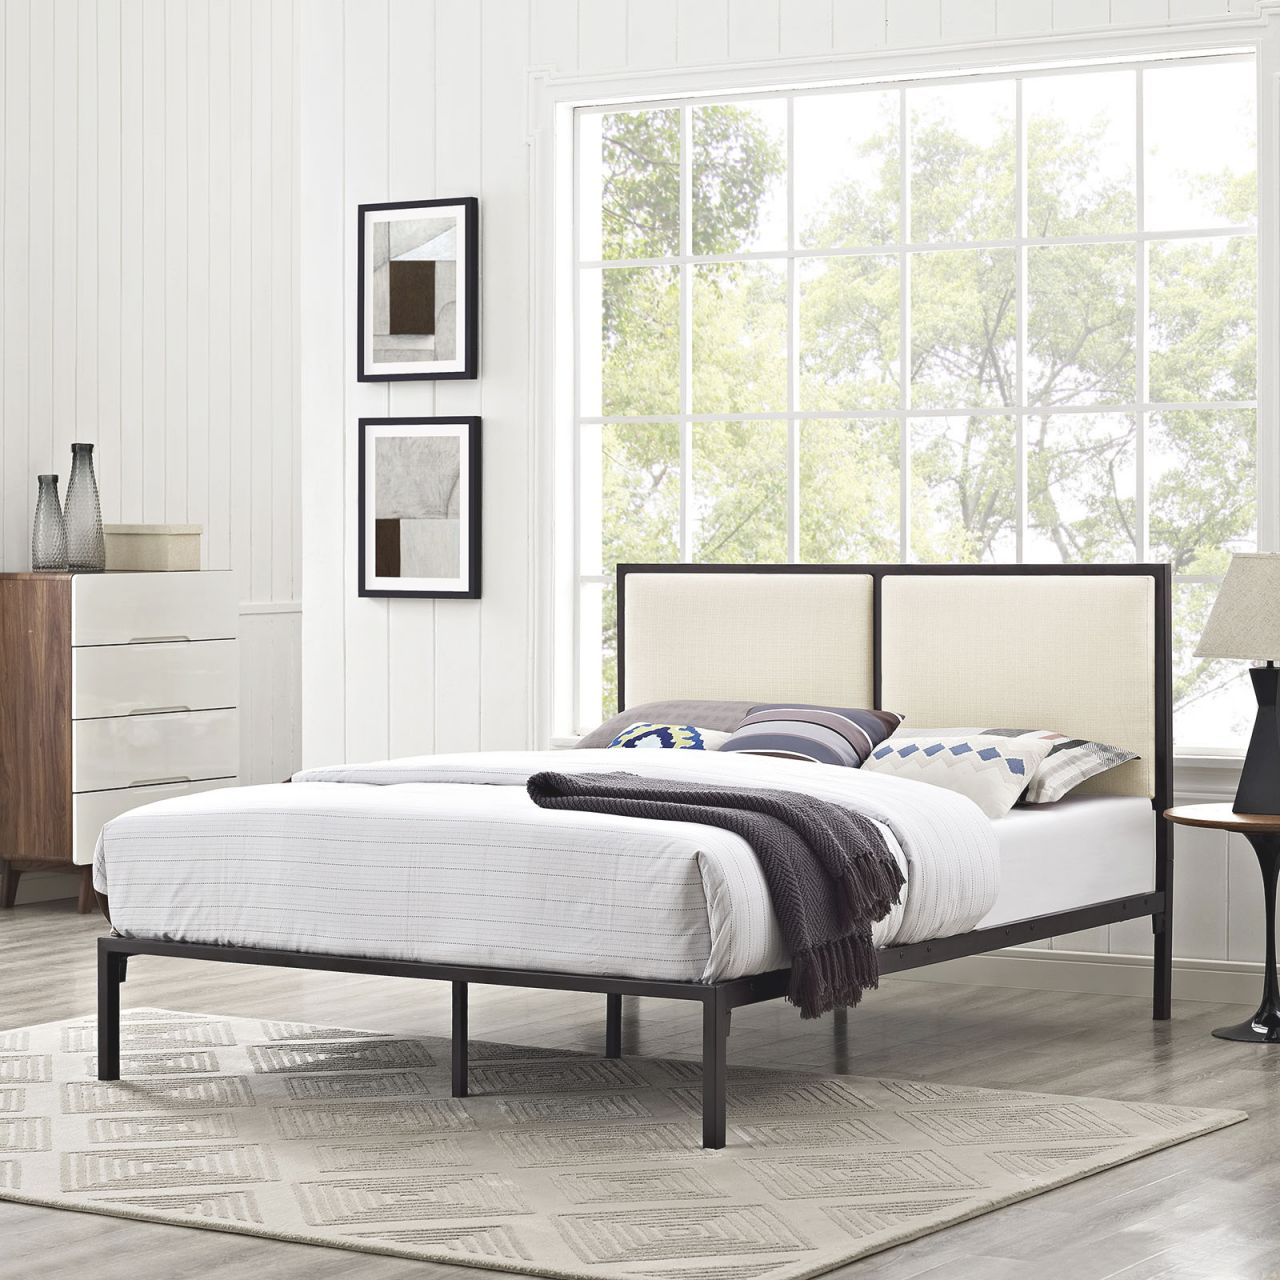 Della 5463 King Brown Metal Platform Bed Frame With Beige Fabric Panel Headboard pertaining to King Bed Frame With Headboard